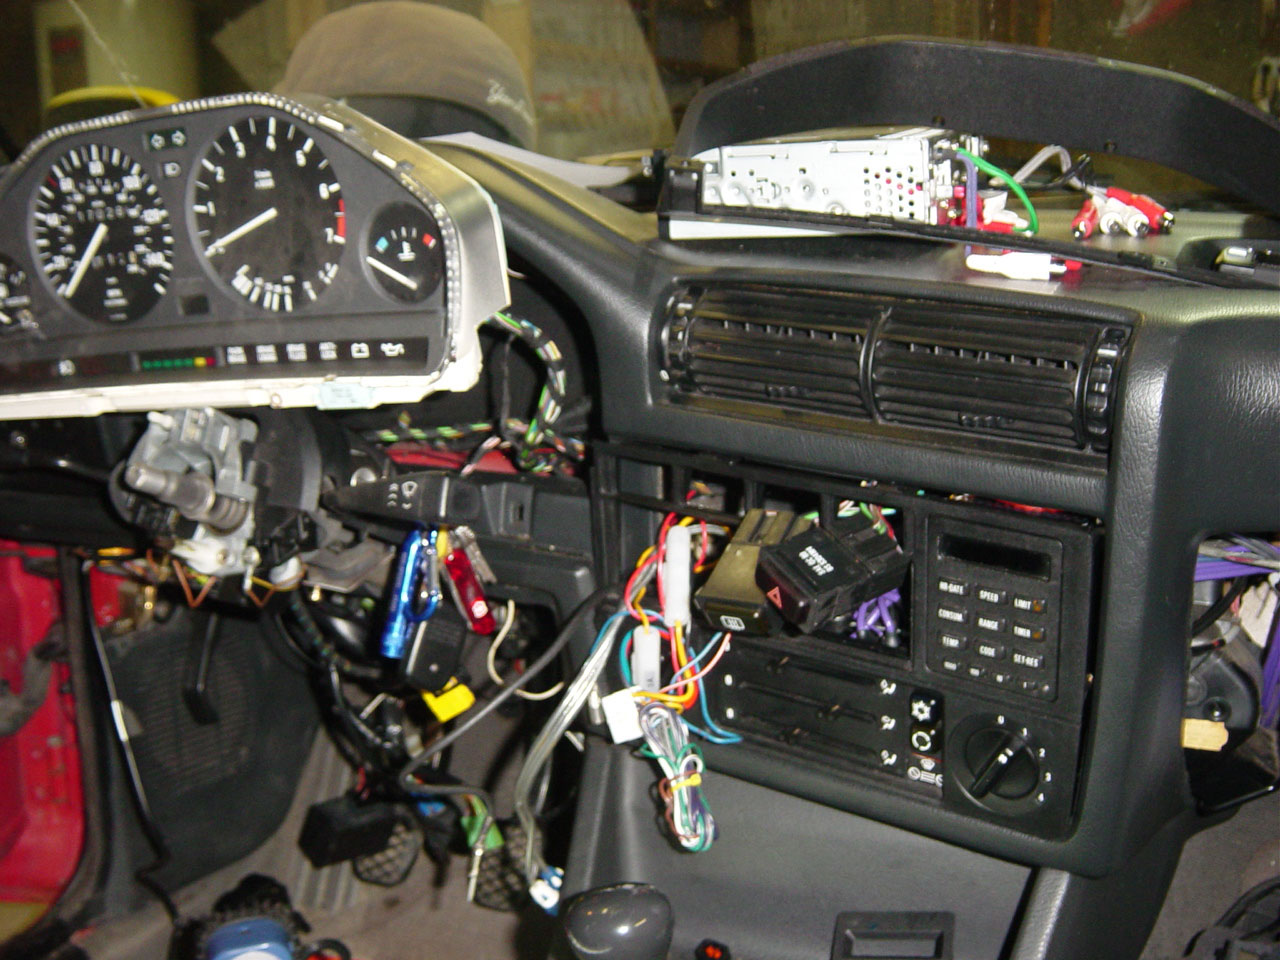 Bmw E30 Obc Wiring Diagram Circuit Symbols Engine 1991 318i M42 On Board Computer Retrofit By Michael Rh Zoso No Ip Org Harness Wiper Diagrams